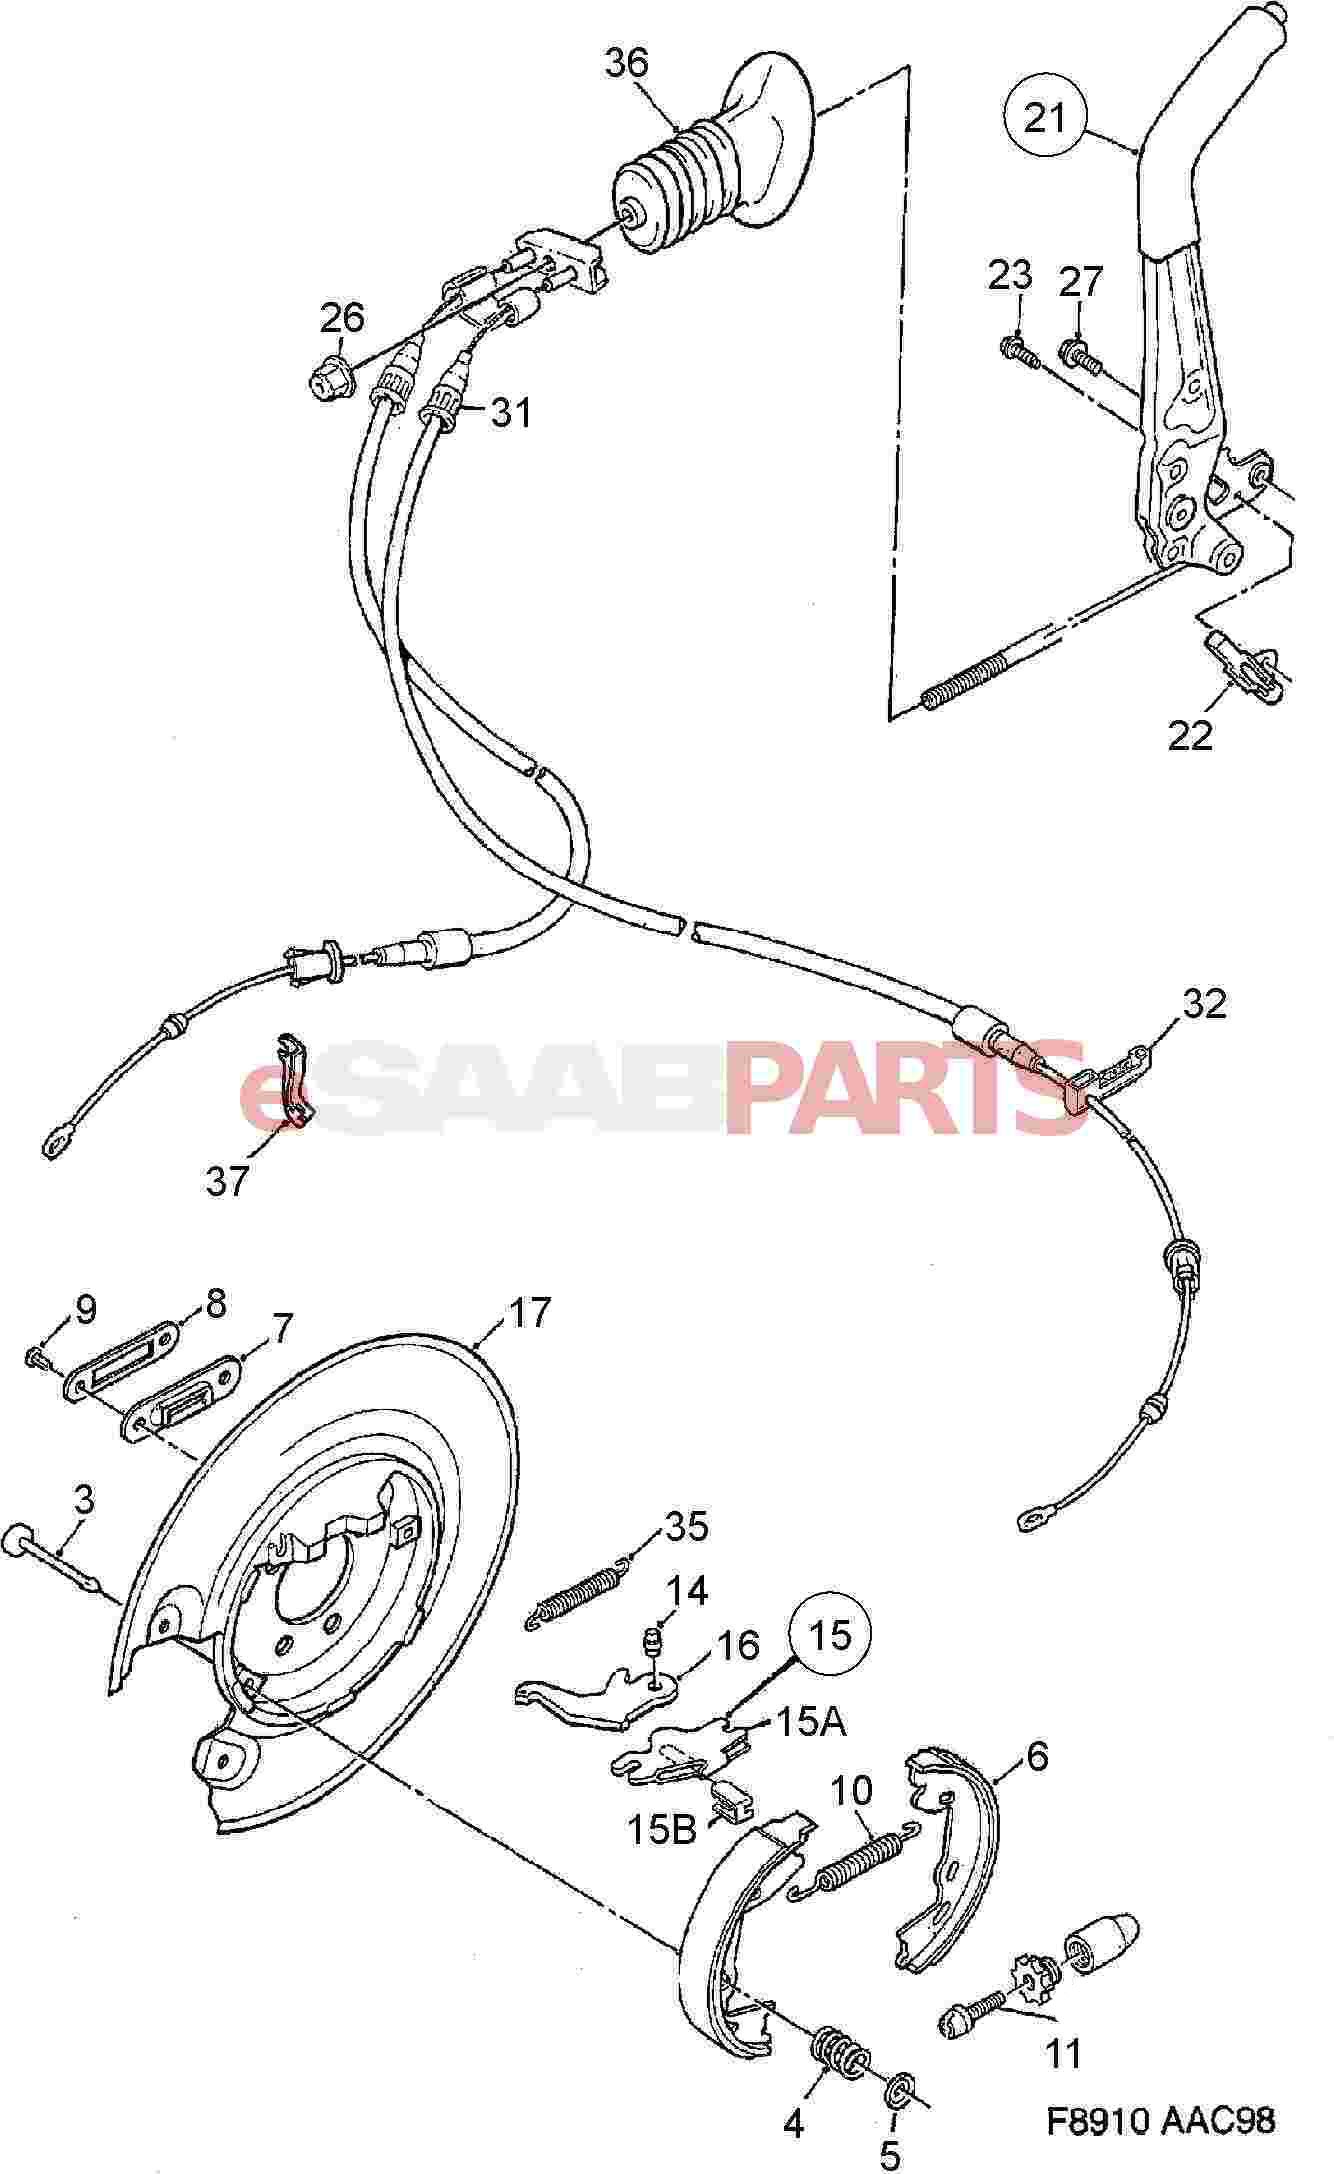 2006 nissan pathfinder diagram showing brake line